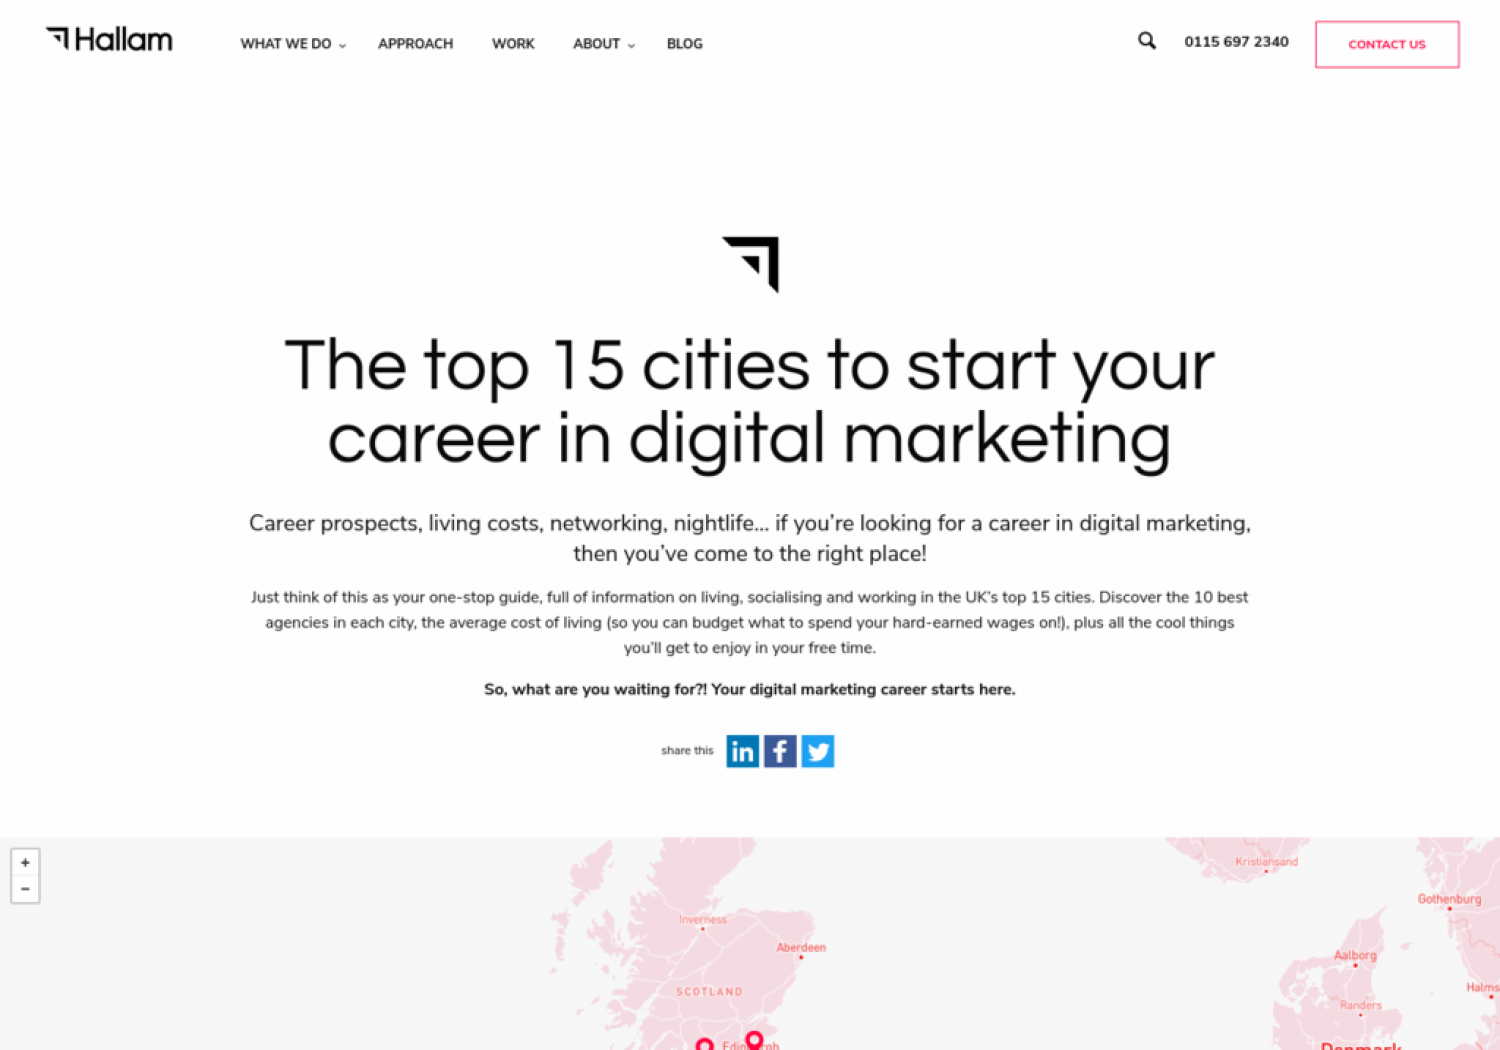 MAP - The top 15 cities to start your career in digital marketing Infographic